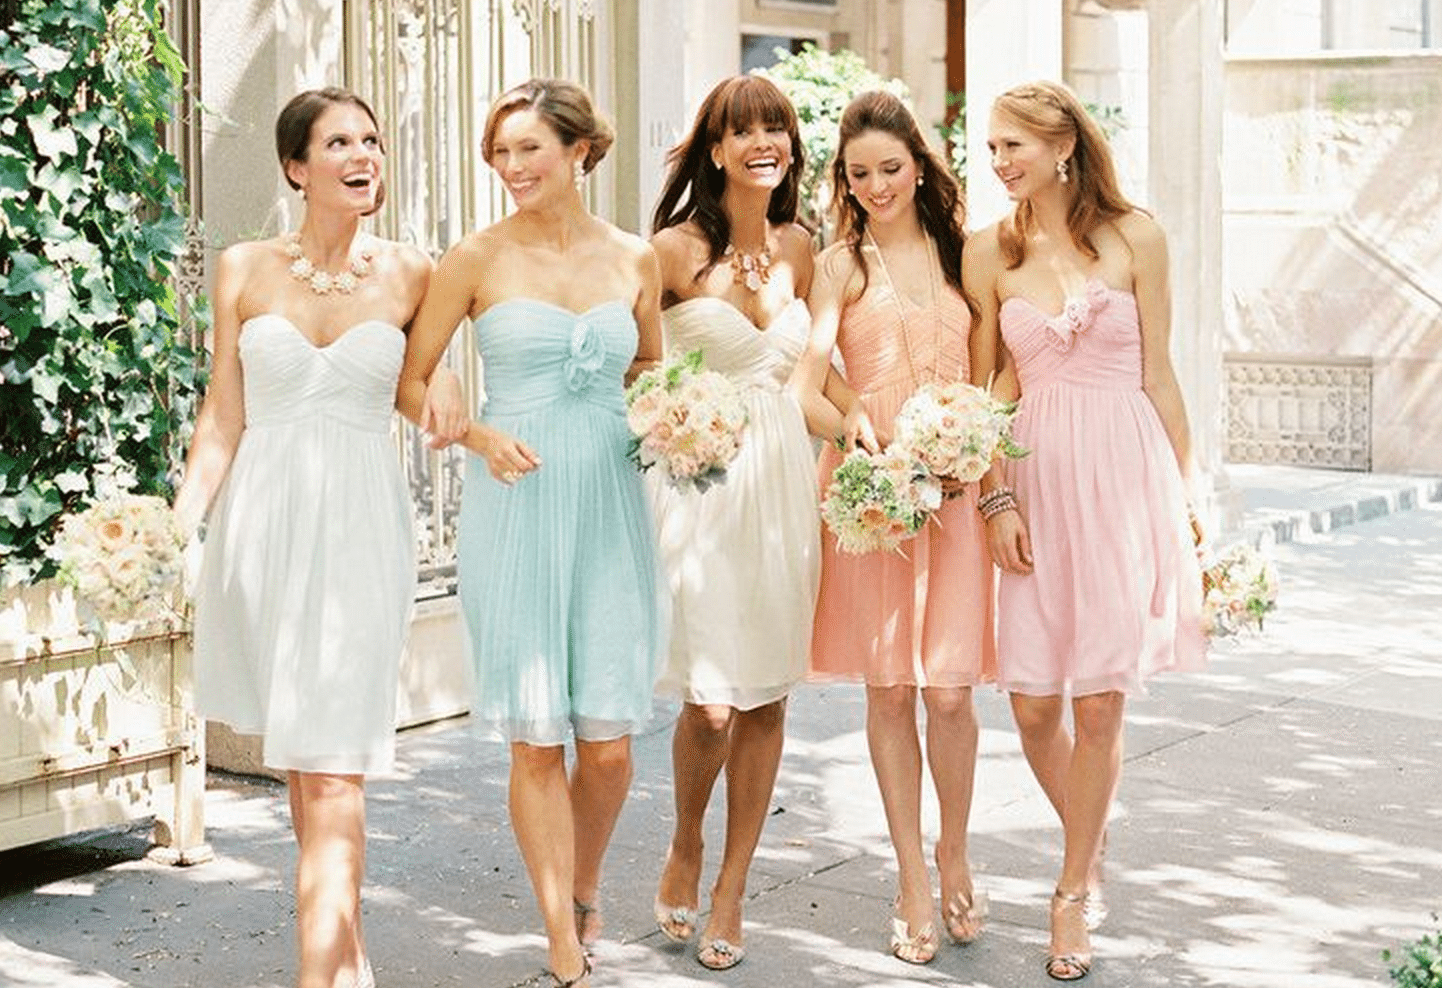 Ideas For Bridesmaid And Groomsmen Attire At A Second Wedding